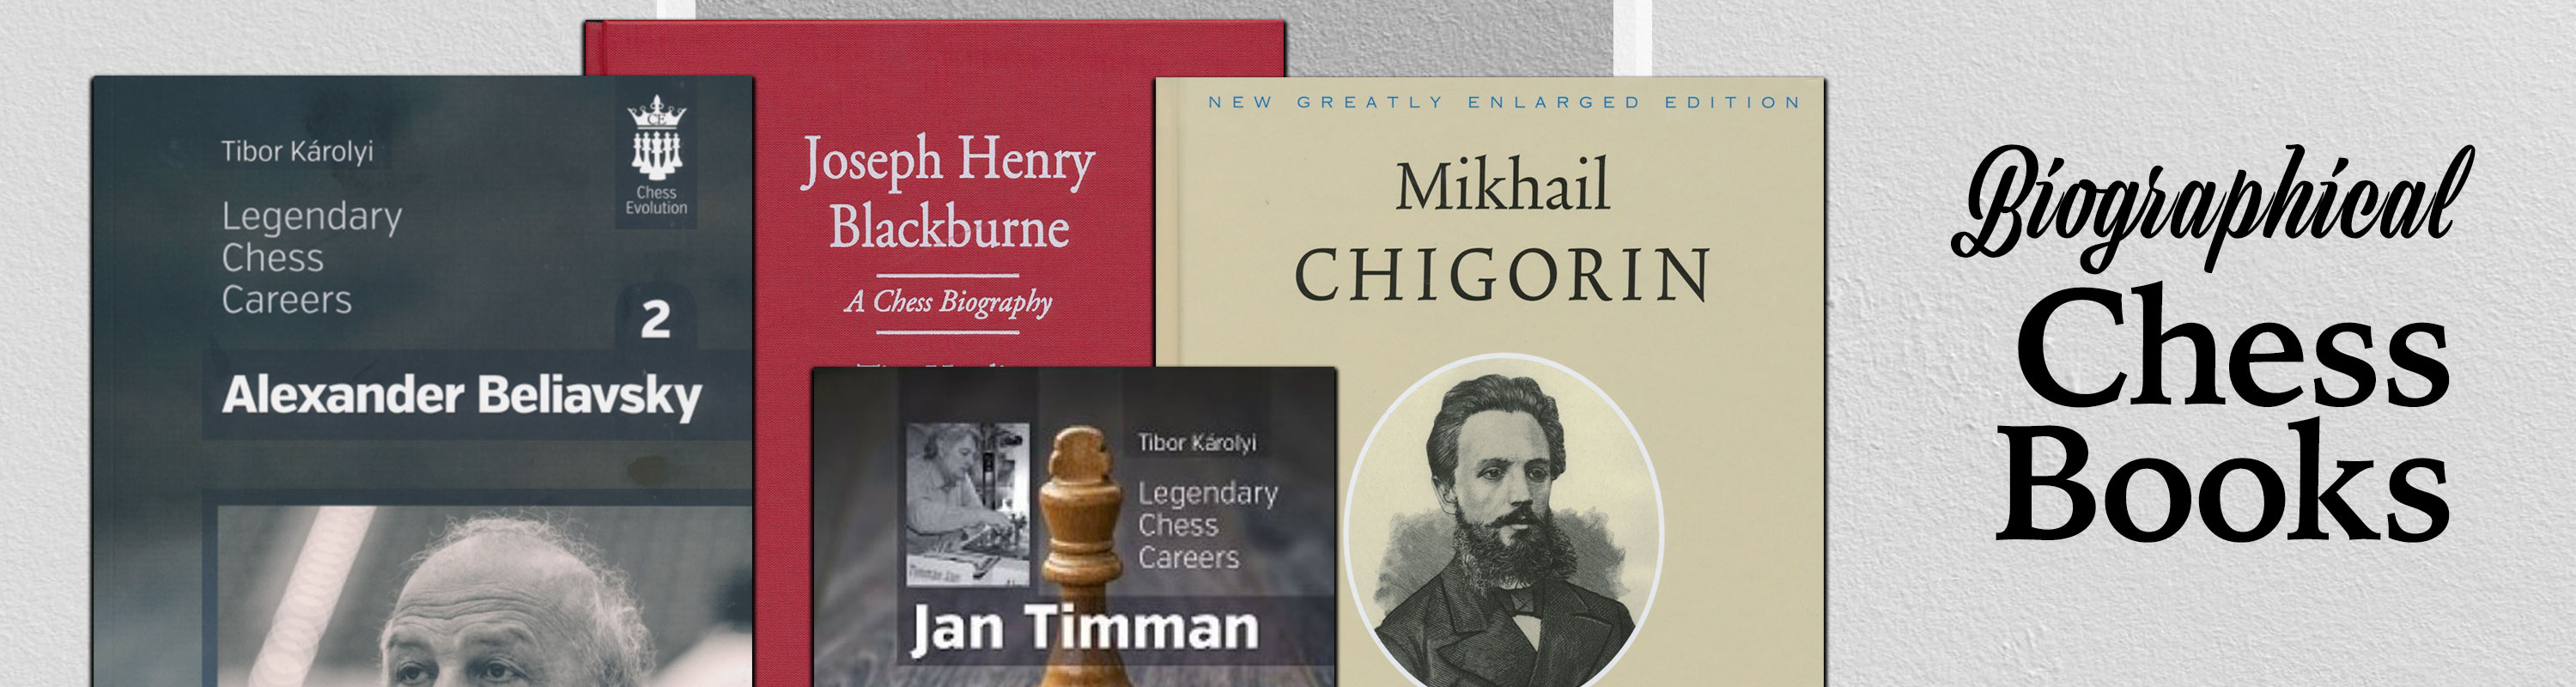 Biographical Chess Books